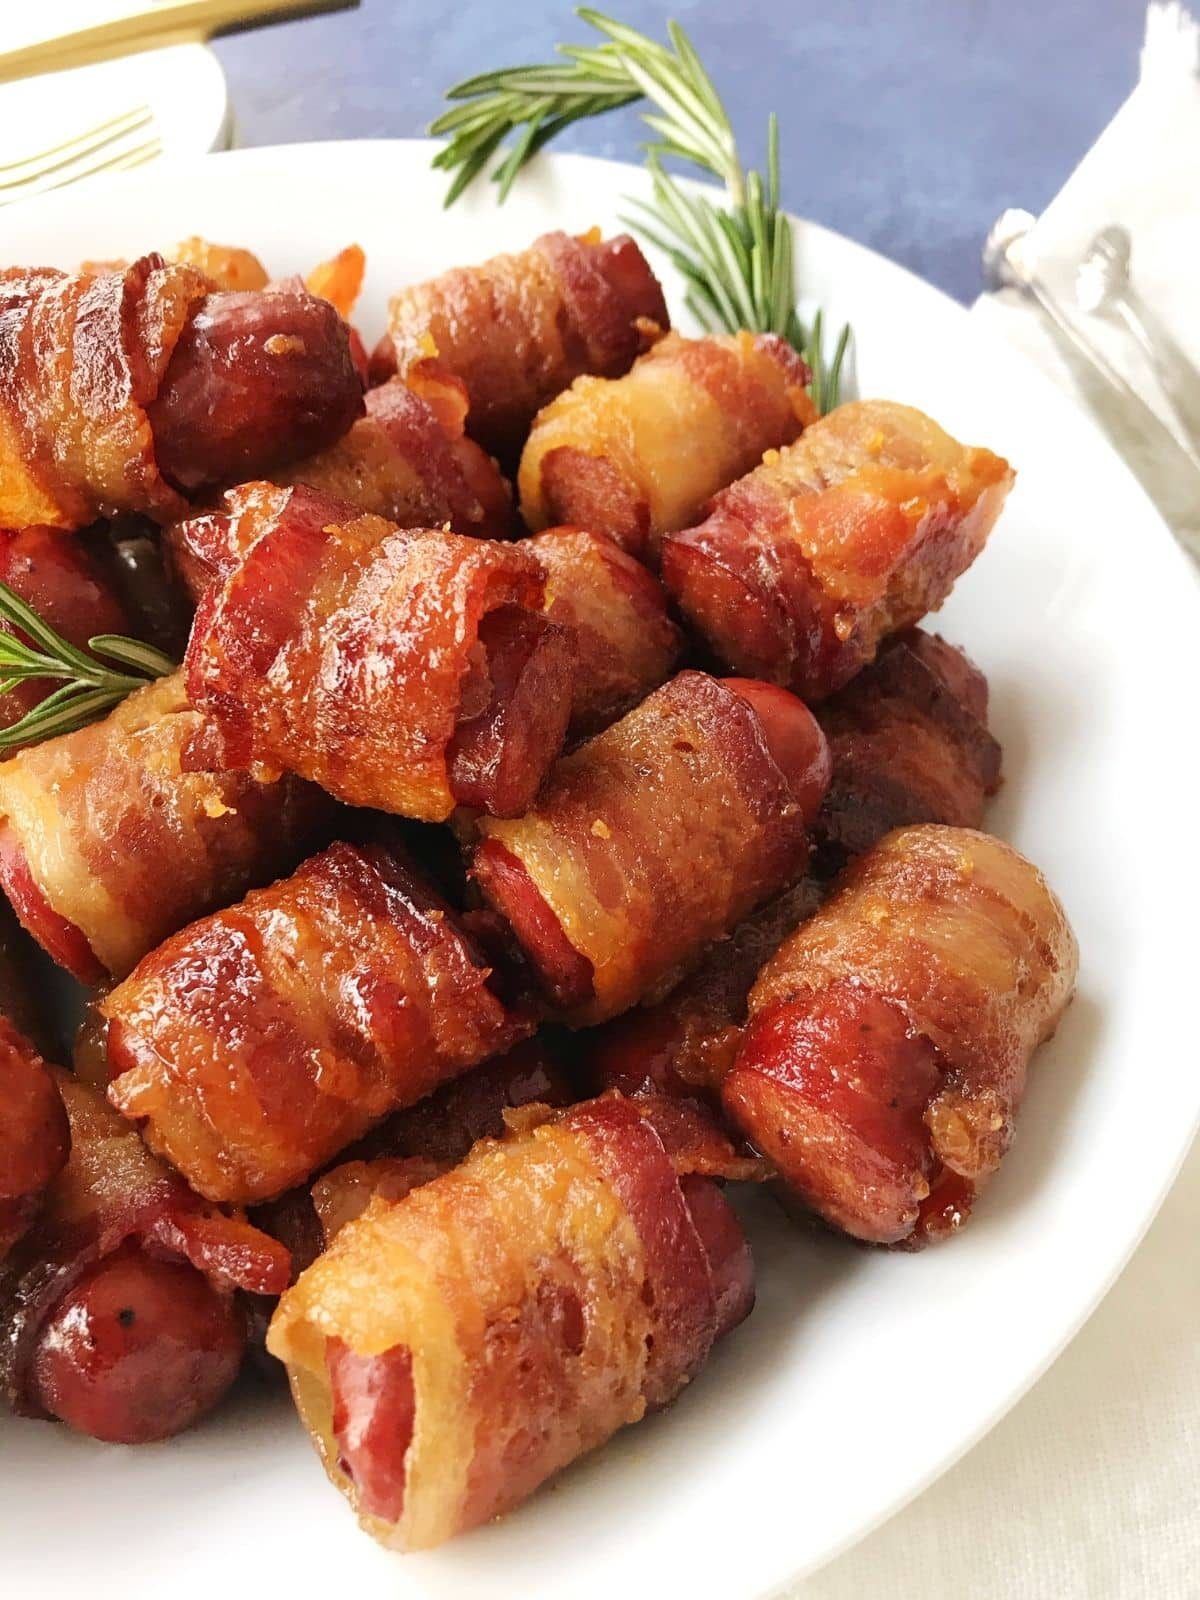 sausages on a white plate